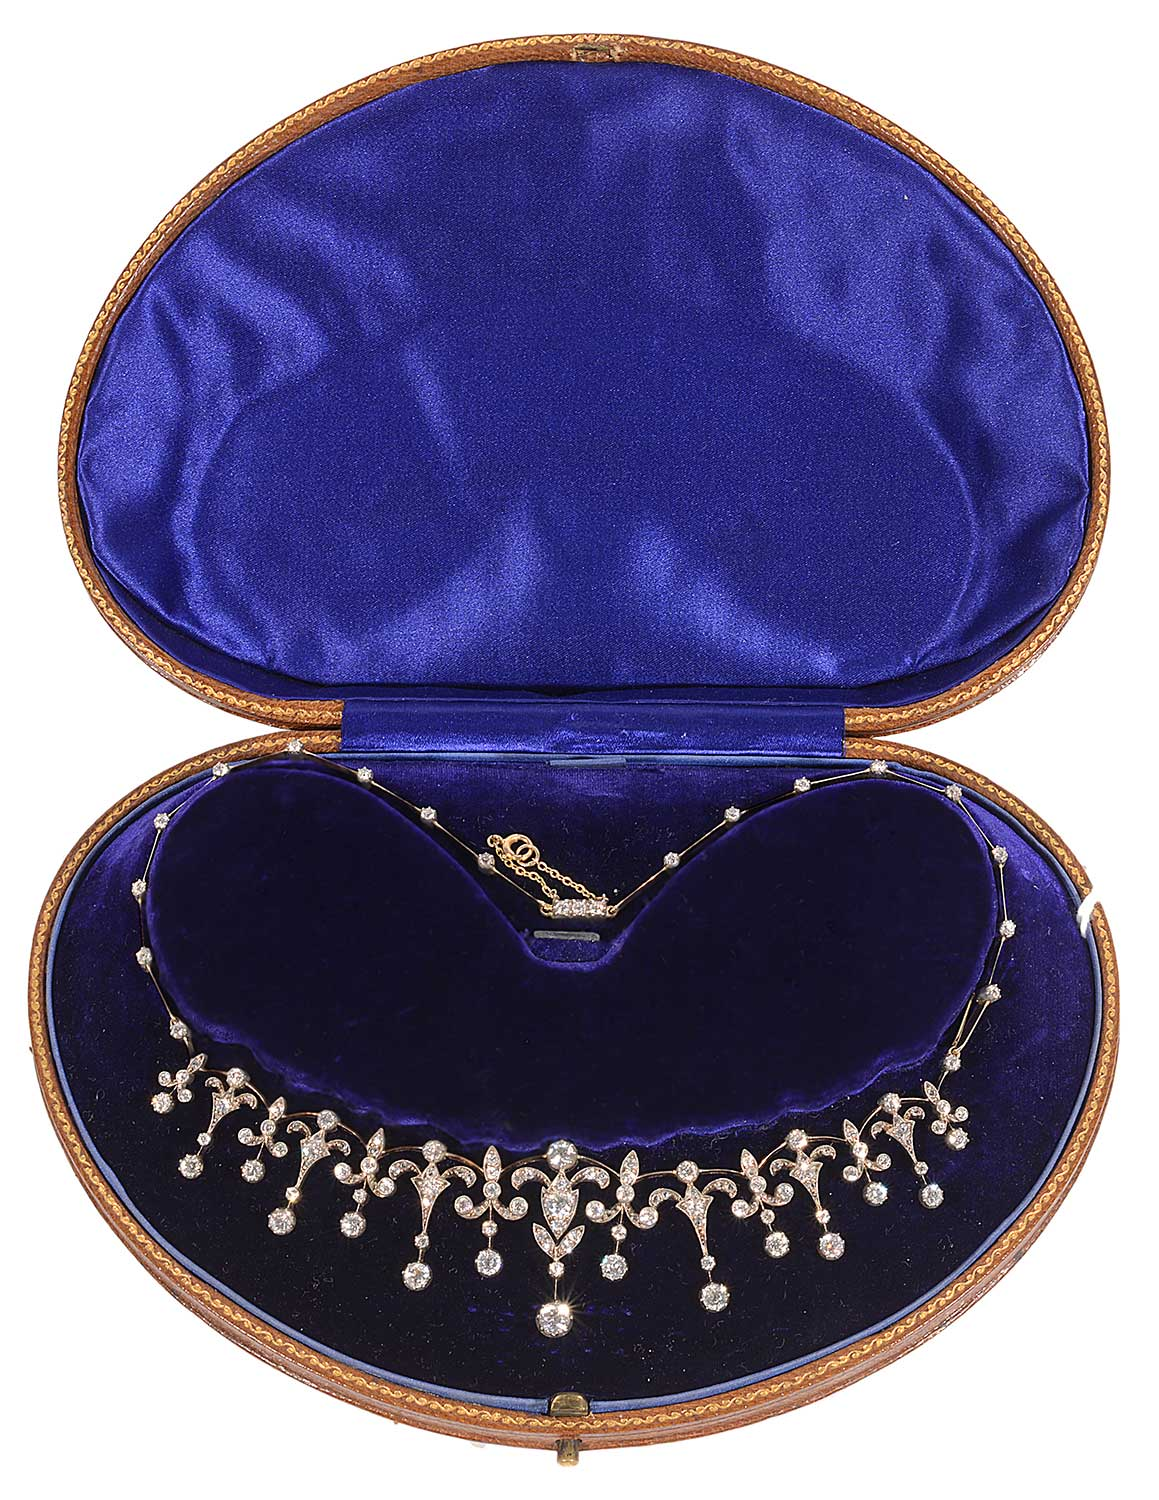 An exquisite Edwardian diamond necklace converting to a tiara